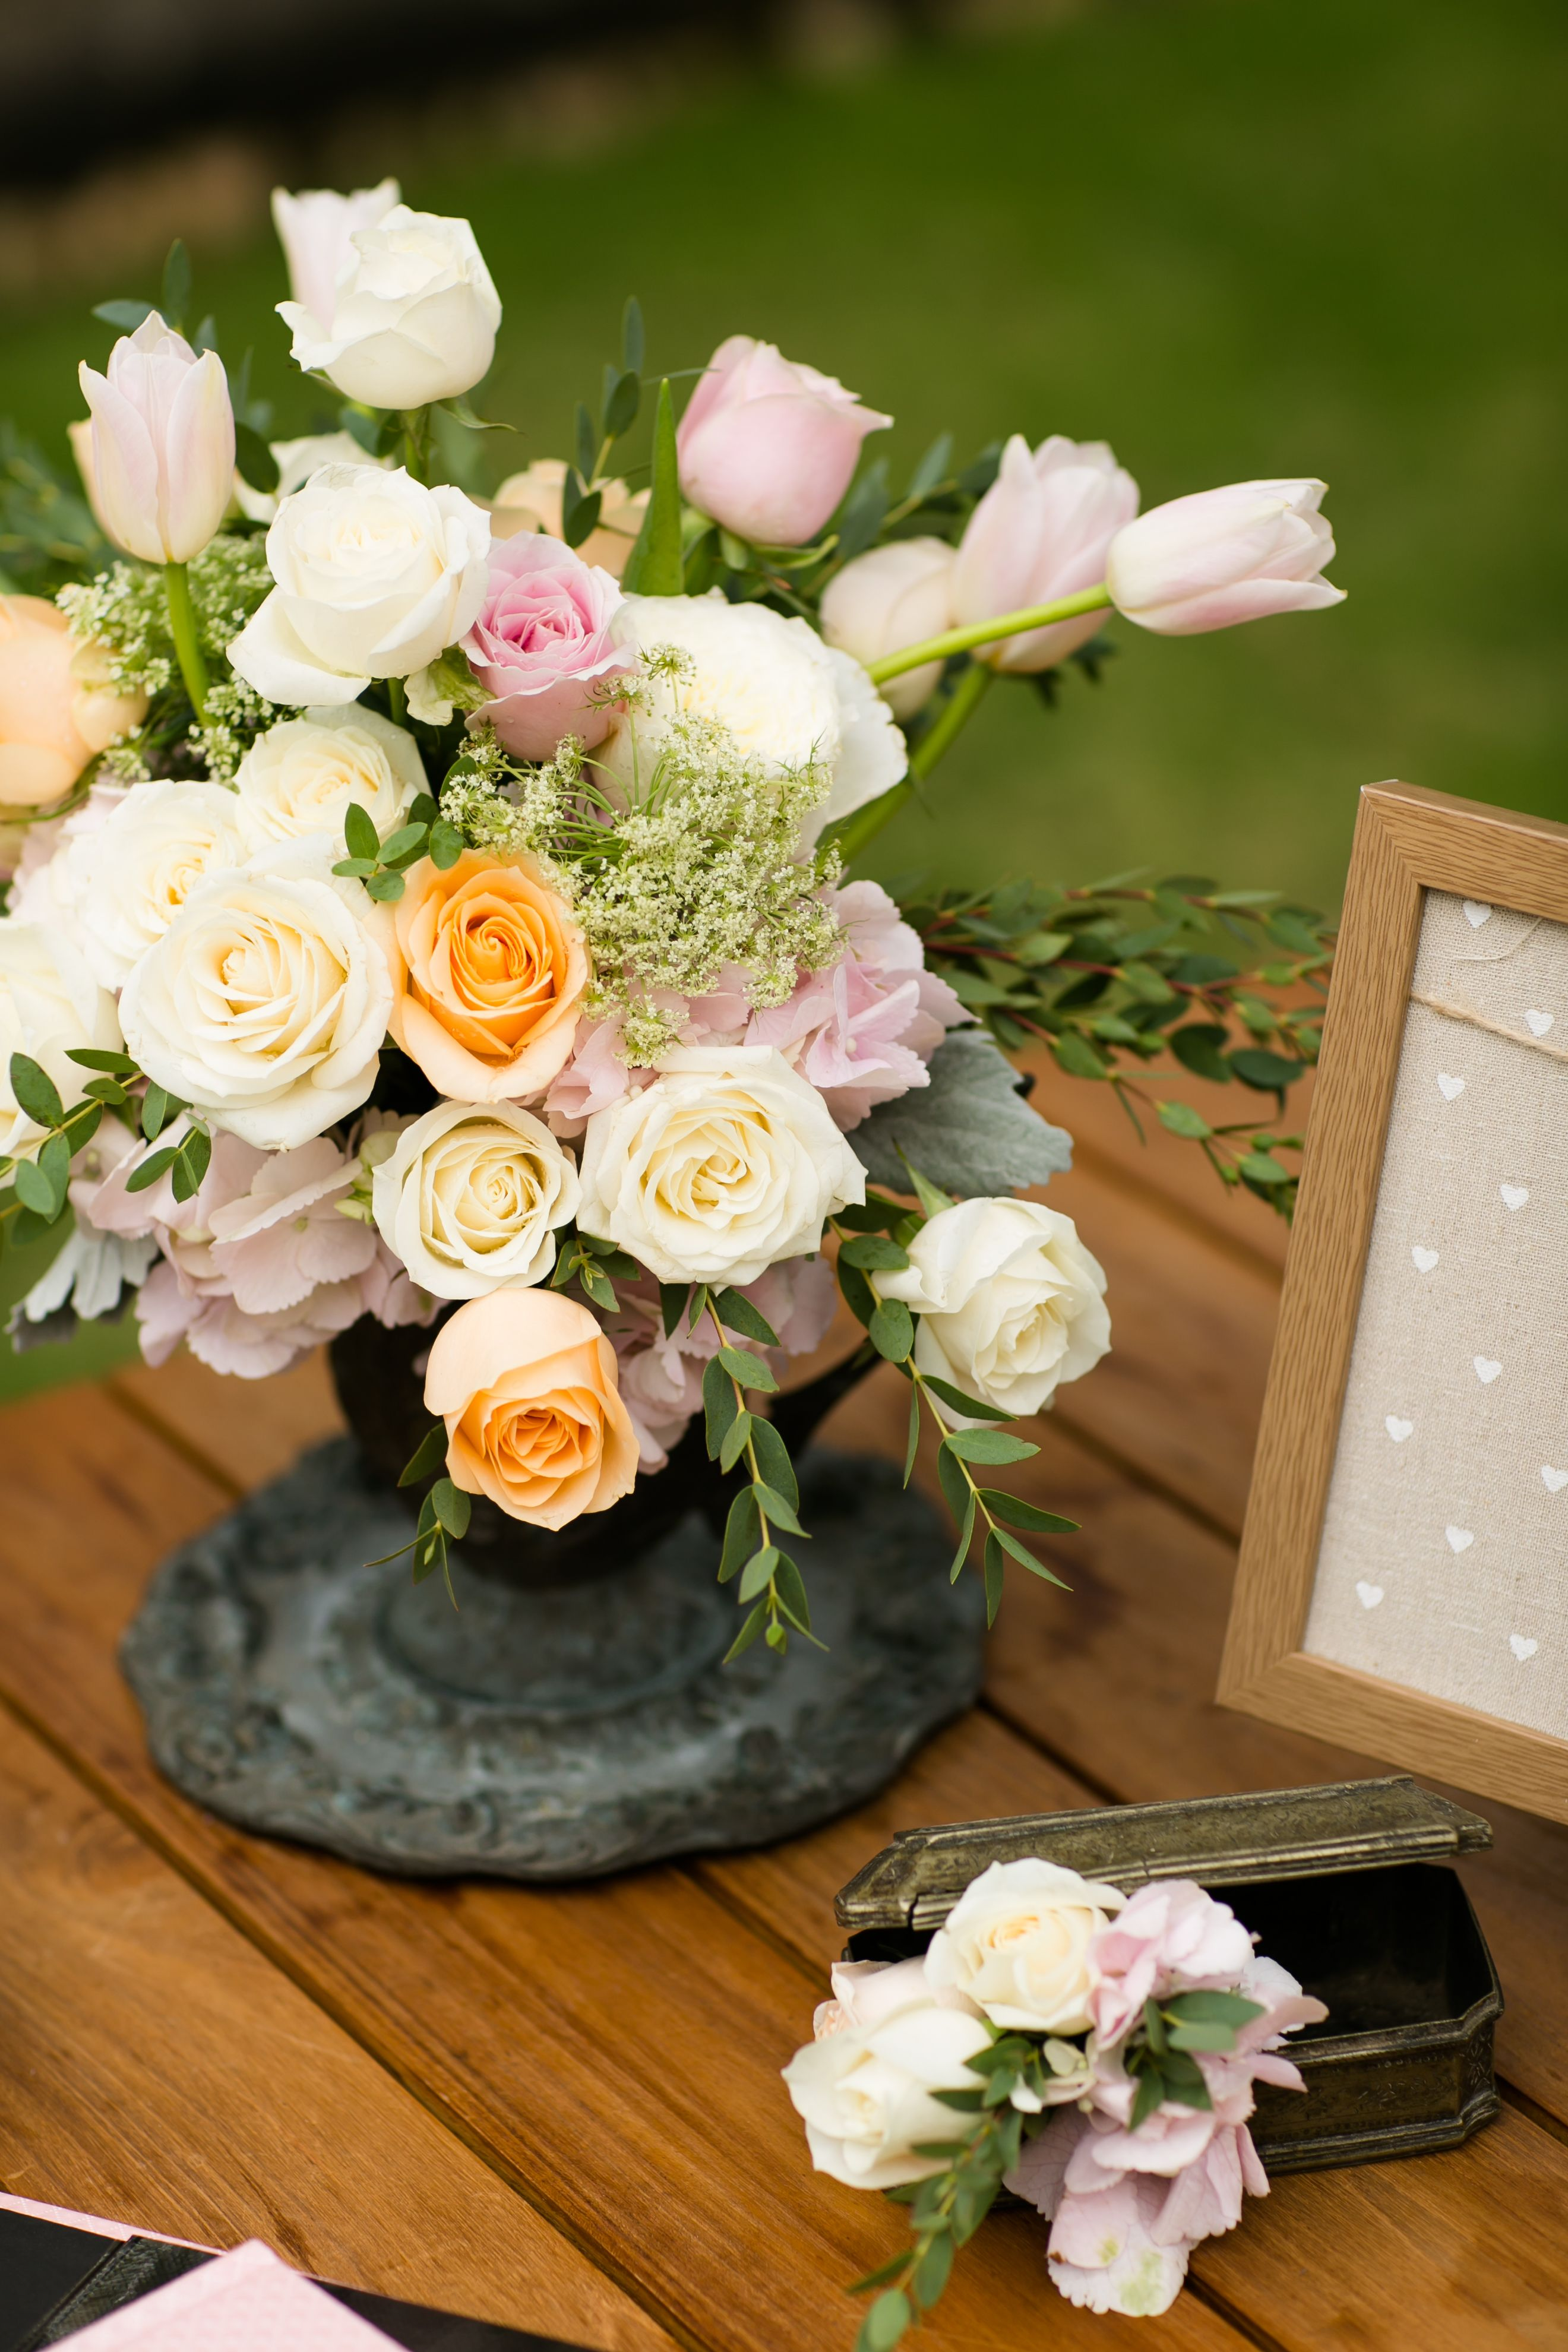 Wedding decorations without flowers  The Registration Table with Rustic Tone  Romantic Garden Party